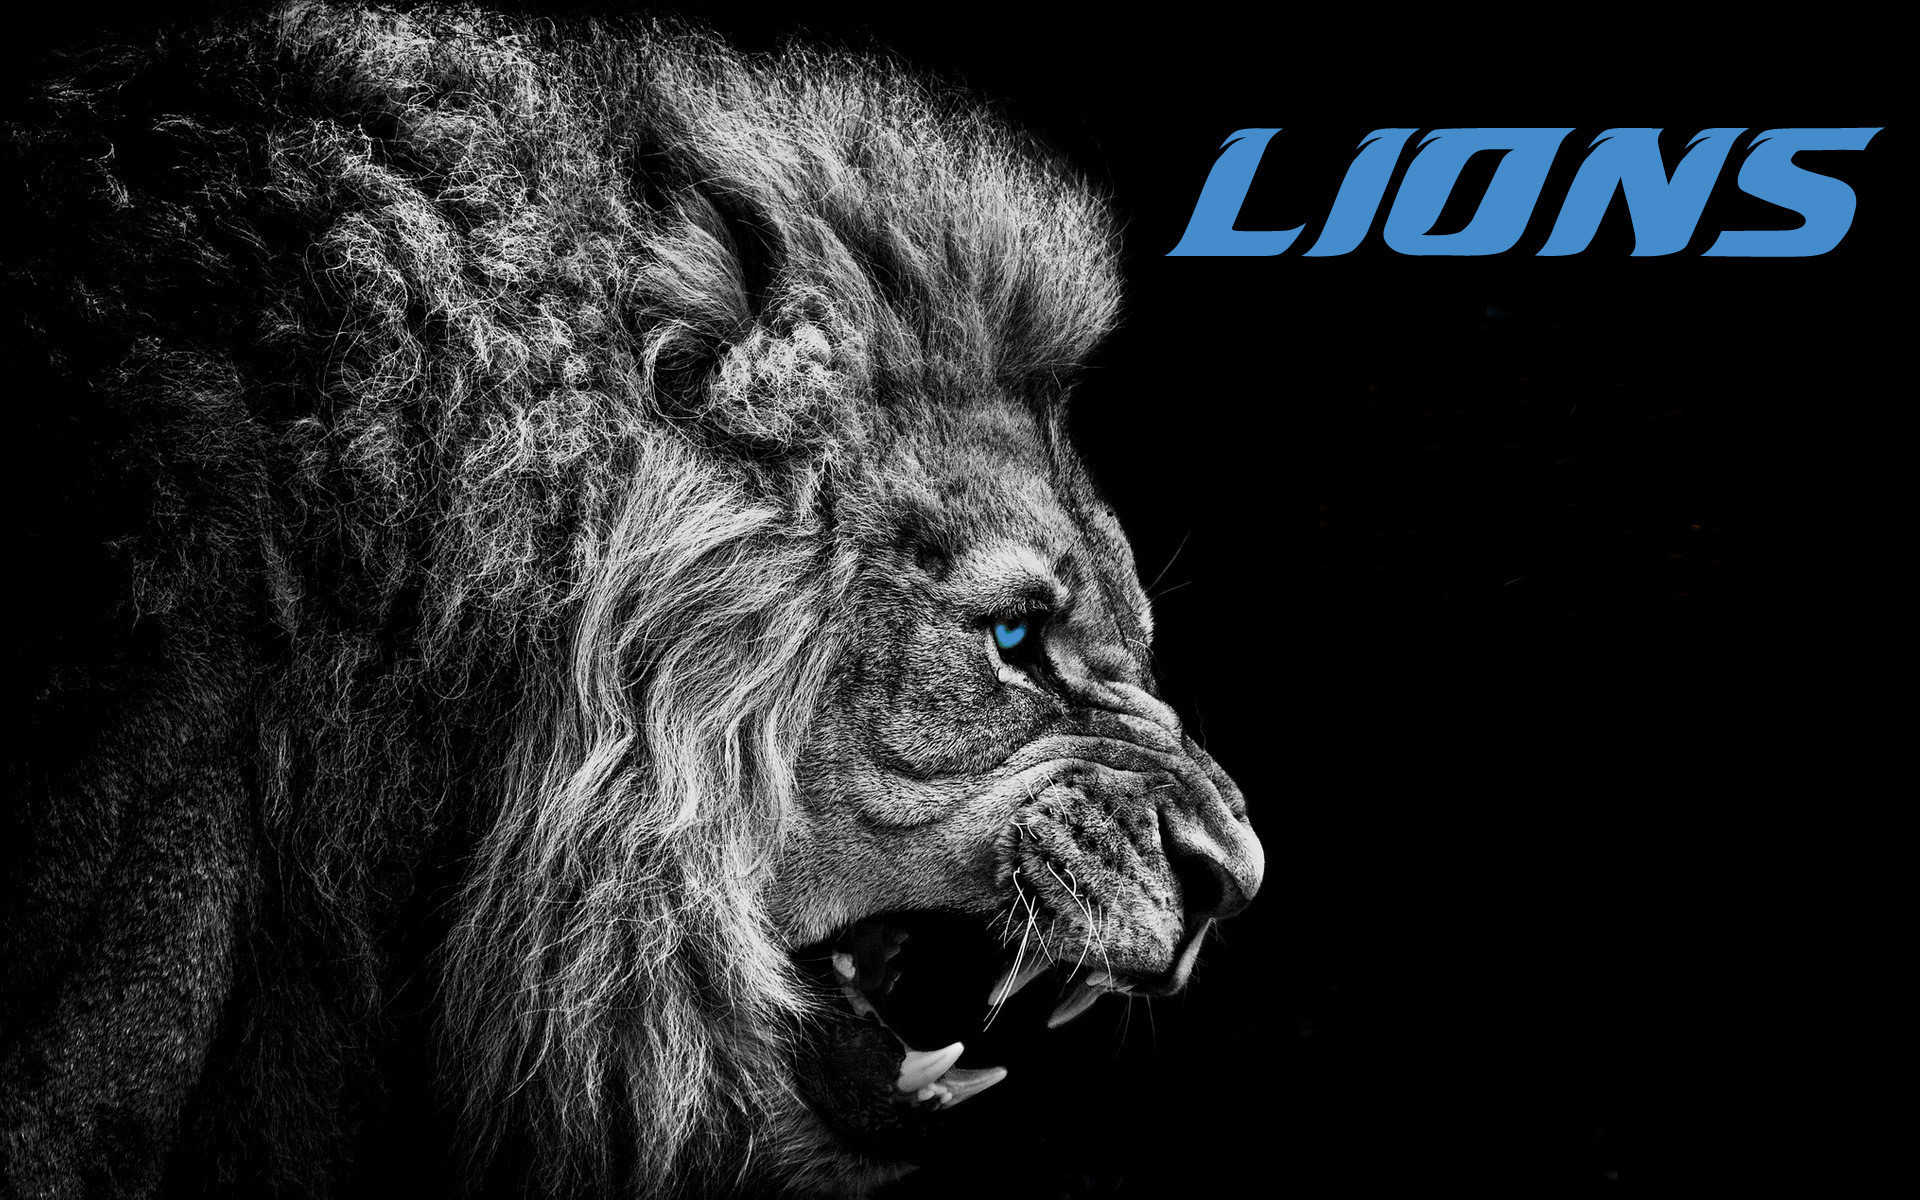 Detroit Lions Wallpapers Relay Wallpaper   HD Wallpapers   Pinterest   Detroit  lions wallpaper, Lion wallpaper and Detroit